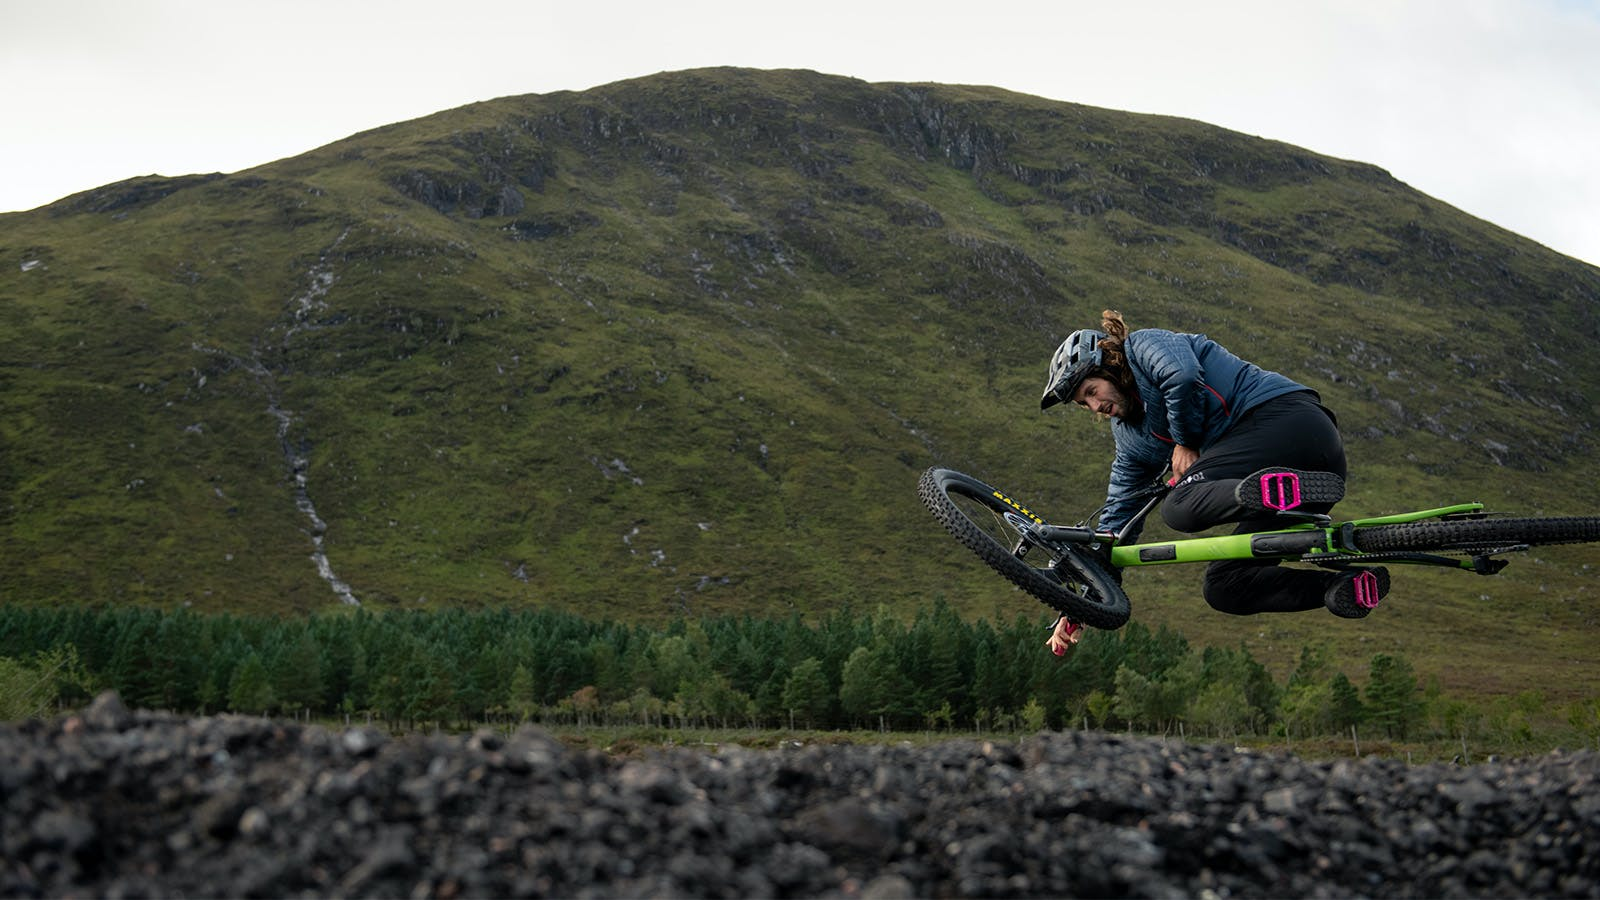 Free Agent rider Sam Dale jumping his Nomad